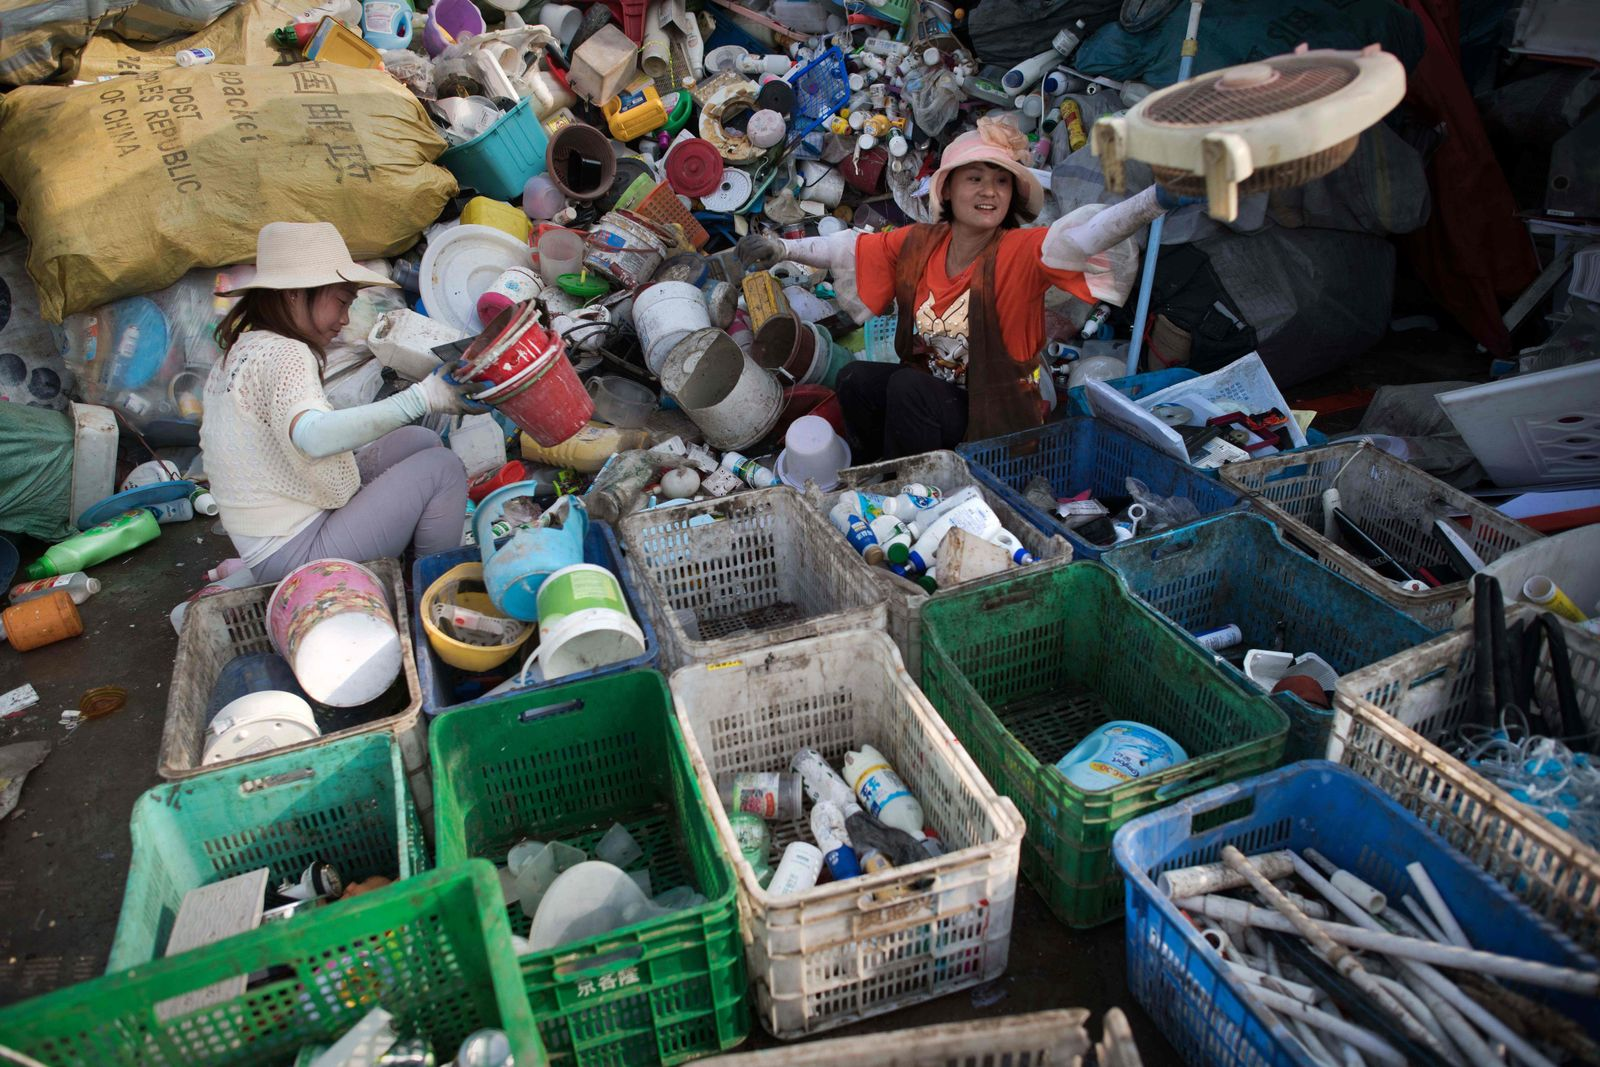 CHINA-ASIA-ENVIRONMENT-WASTE-PLASTIC